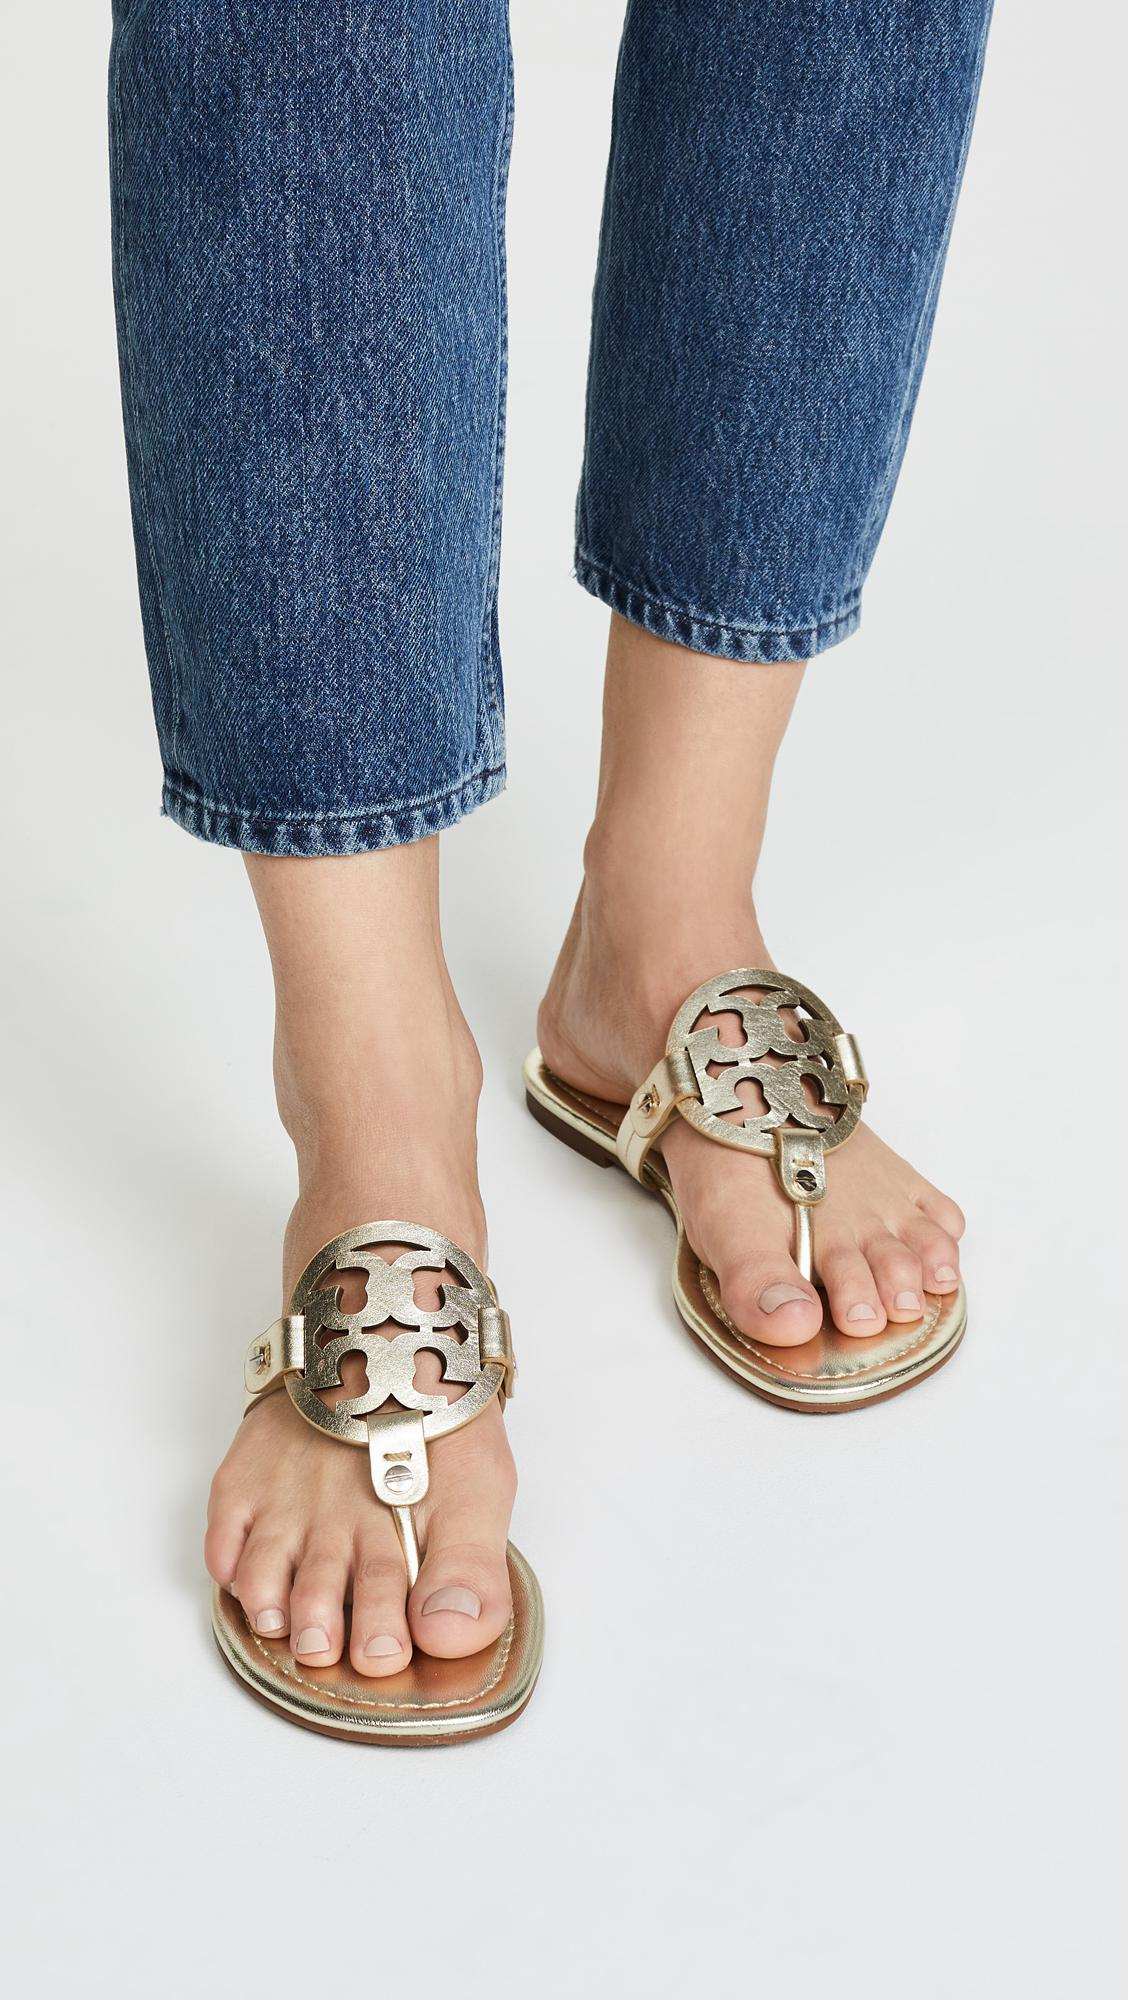 061e13ea7010 Tory Burch - Multicolor Miller Thong Sandals - Lyst. View fullscreen